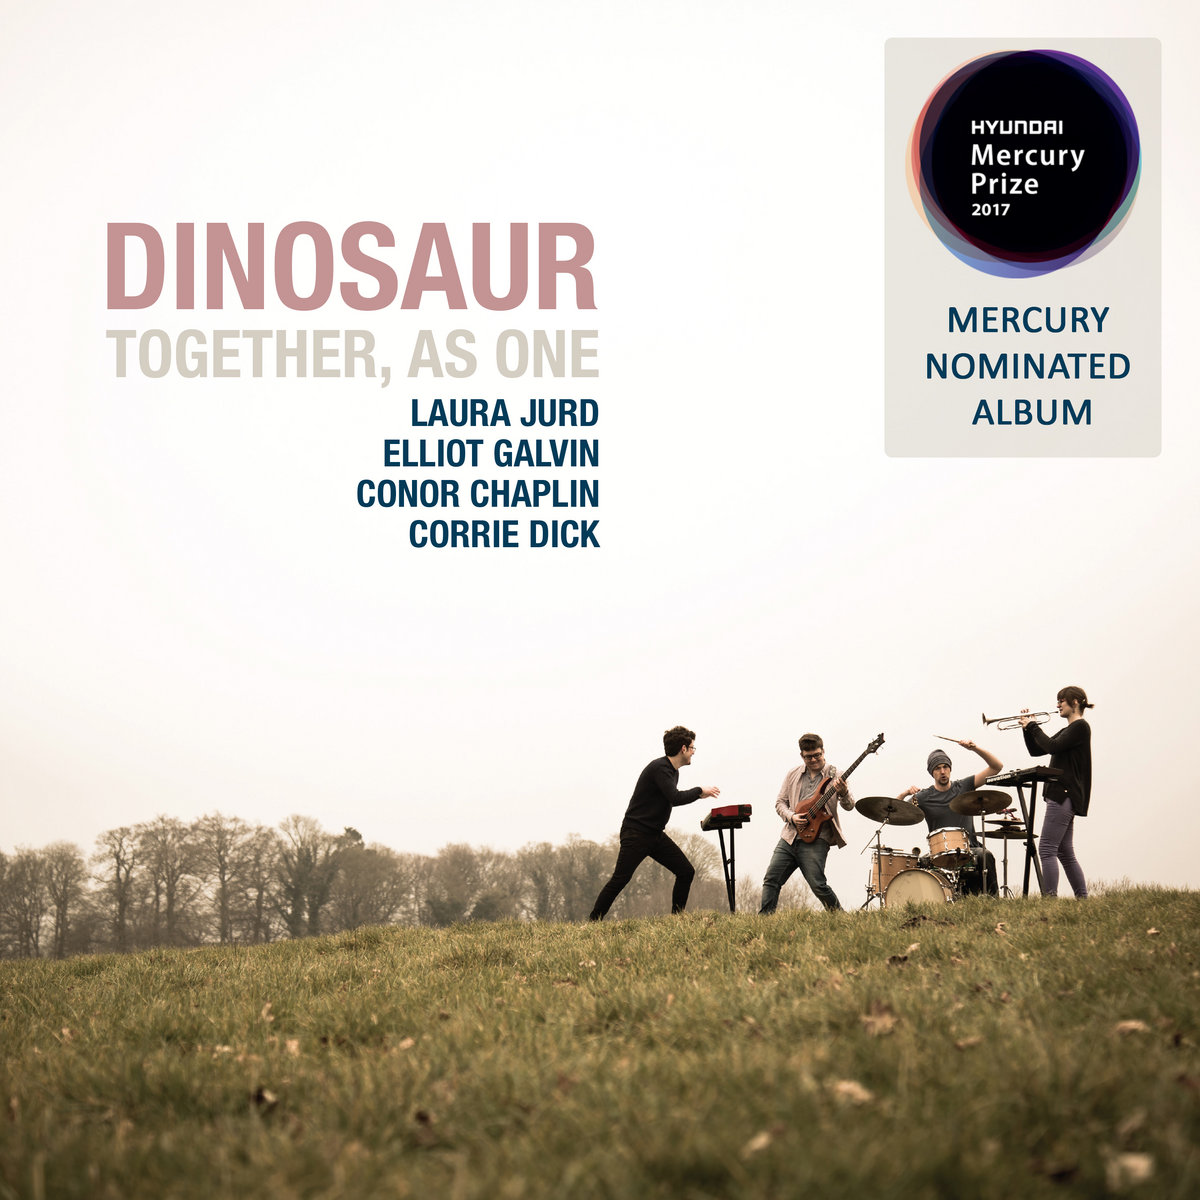 together as one dinosaur